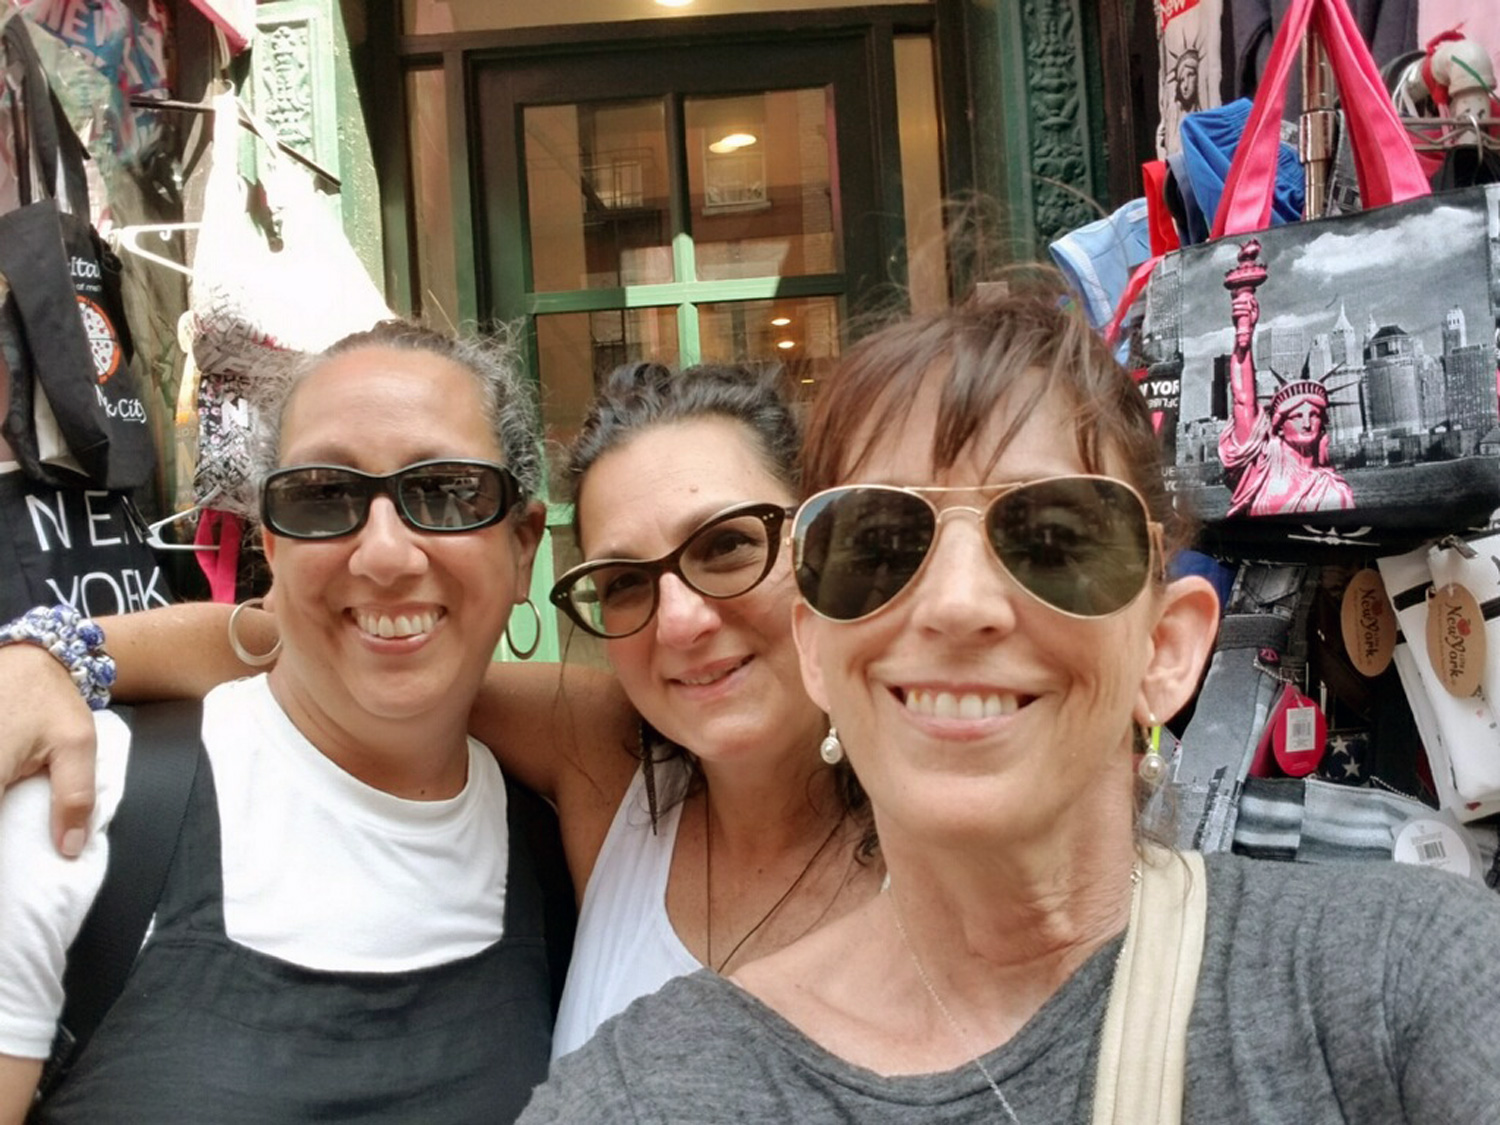 Friends for life: Dominique, Me and Dianne. AKA 3D. Smiles of well fed women looking for bargains.                       Photo credit: Dianne Guarino